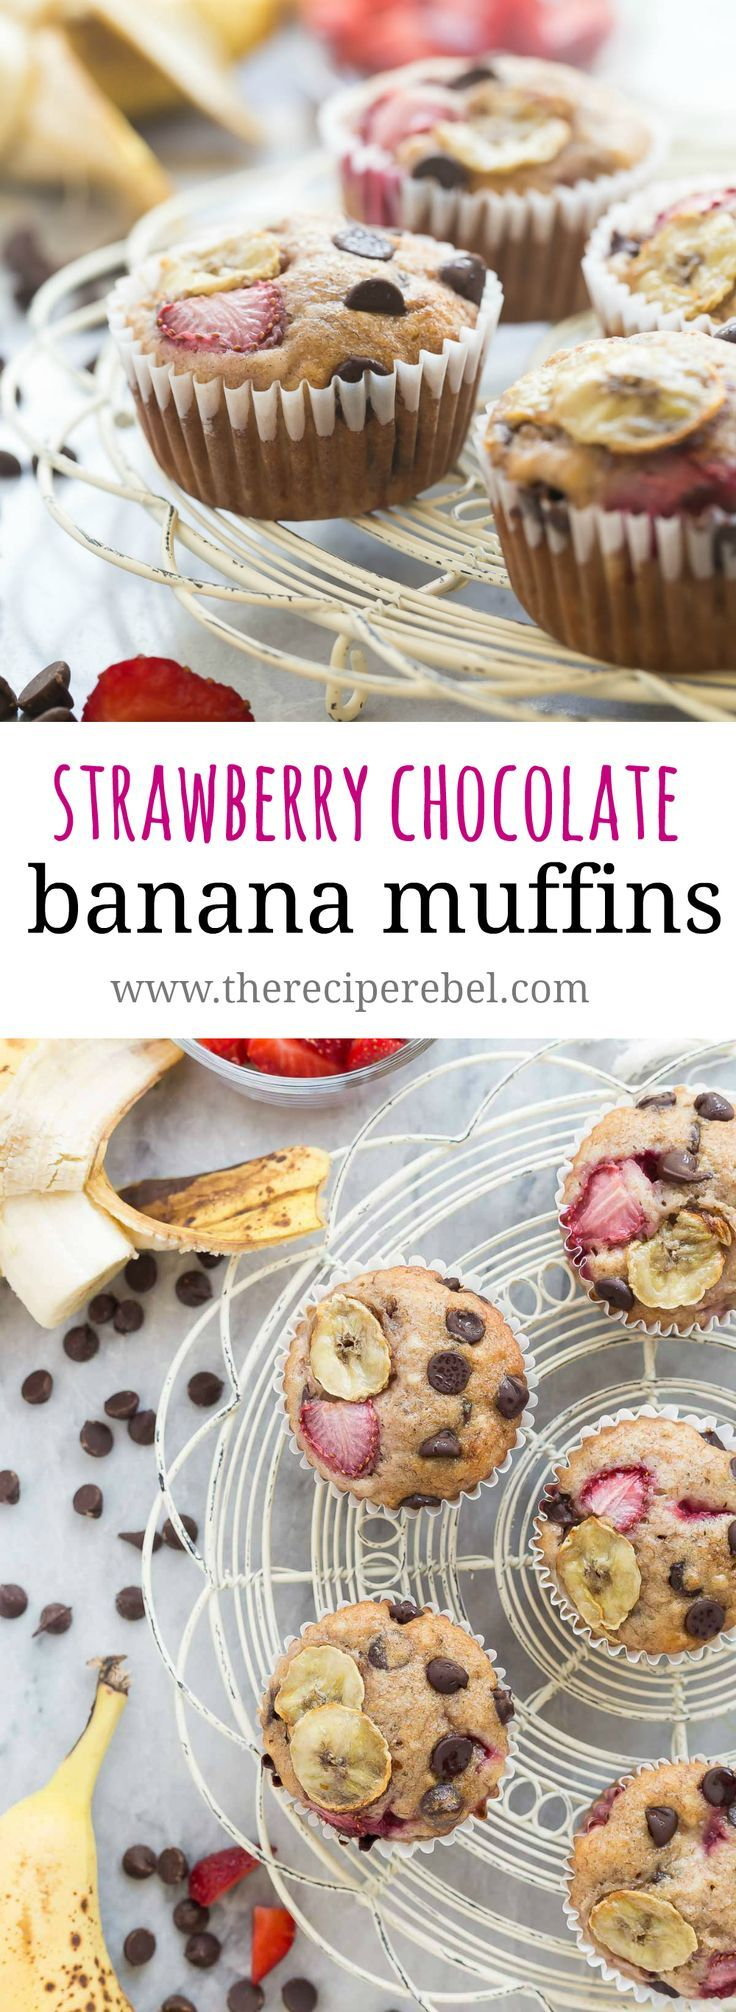 These Chocolate Chip Banana Muffins are the best — so moist but made healthier with whole wheat flour, yogurt and loaded with fresh strawberries!